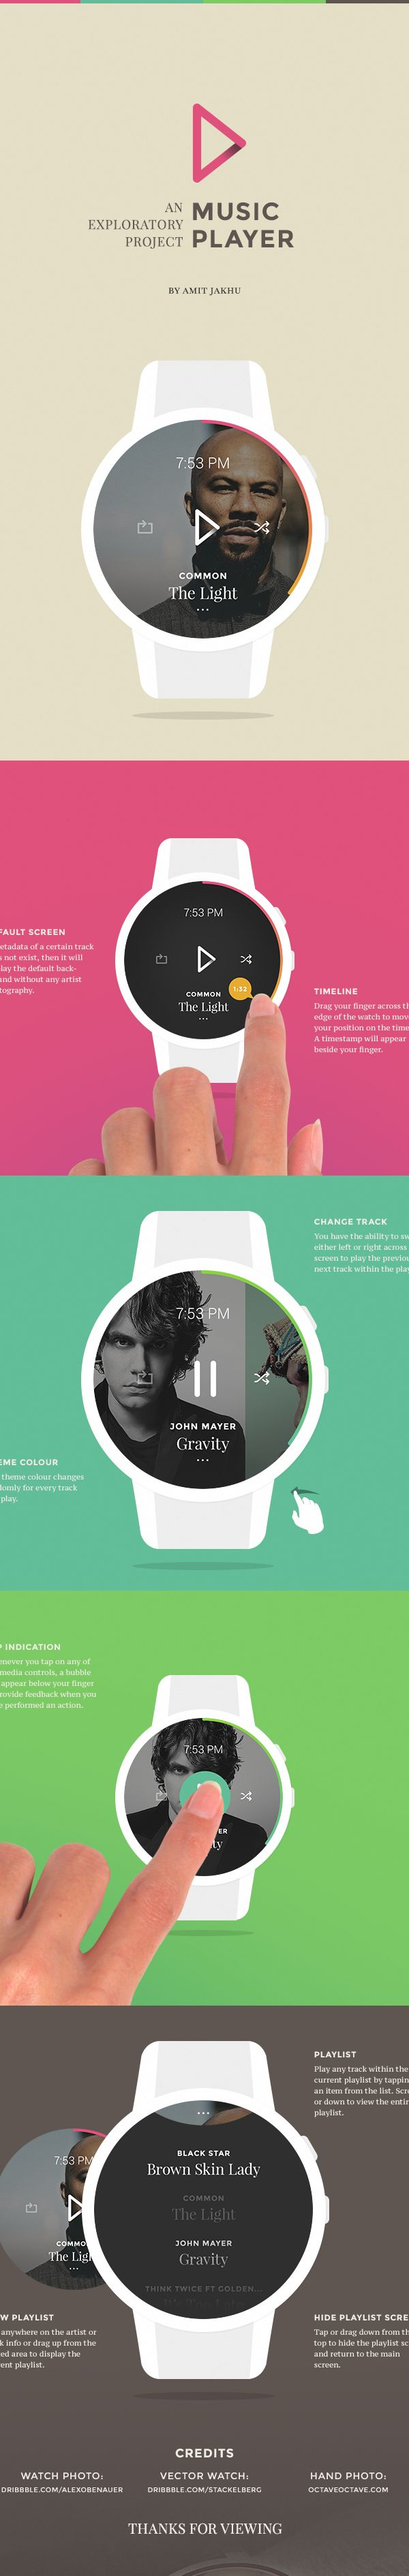 Smartwatch Music App (Concept) on Behance